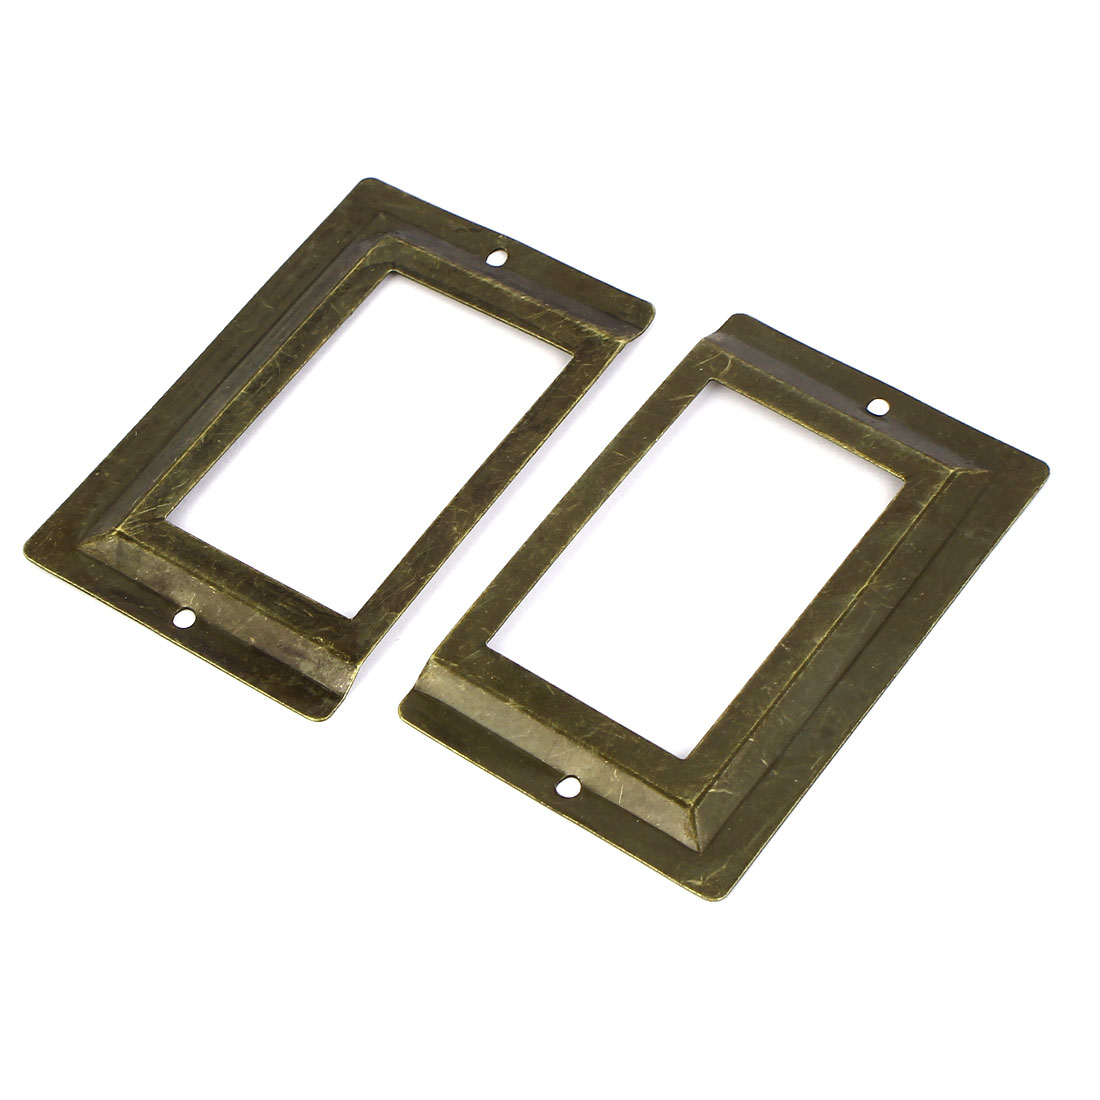 Post Office Library File Drawer Metal Tag Label Holder Bronze Tone 2pcs